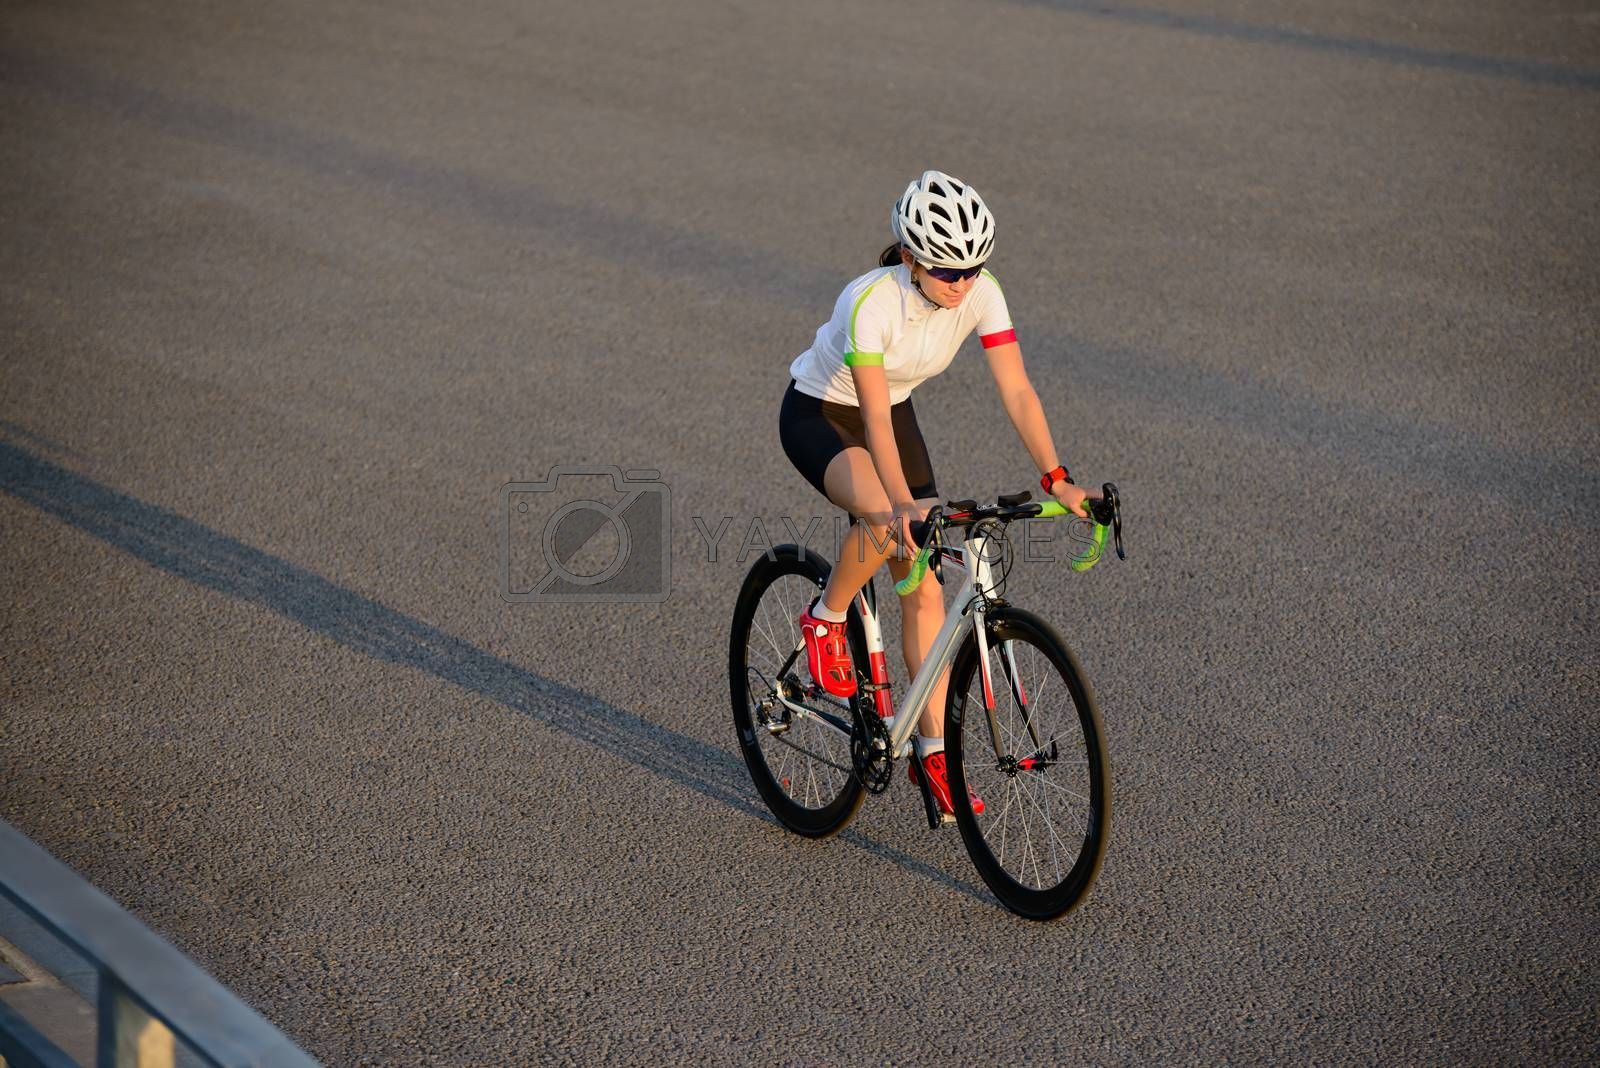 Royalty free image of Young Woman Riding Road Bicycle on Free Street in the City at Sunset. Healthy Lifestyle and Sport Concept. by maxpro